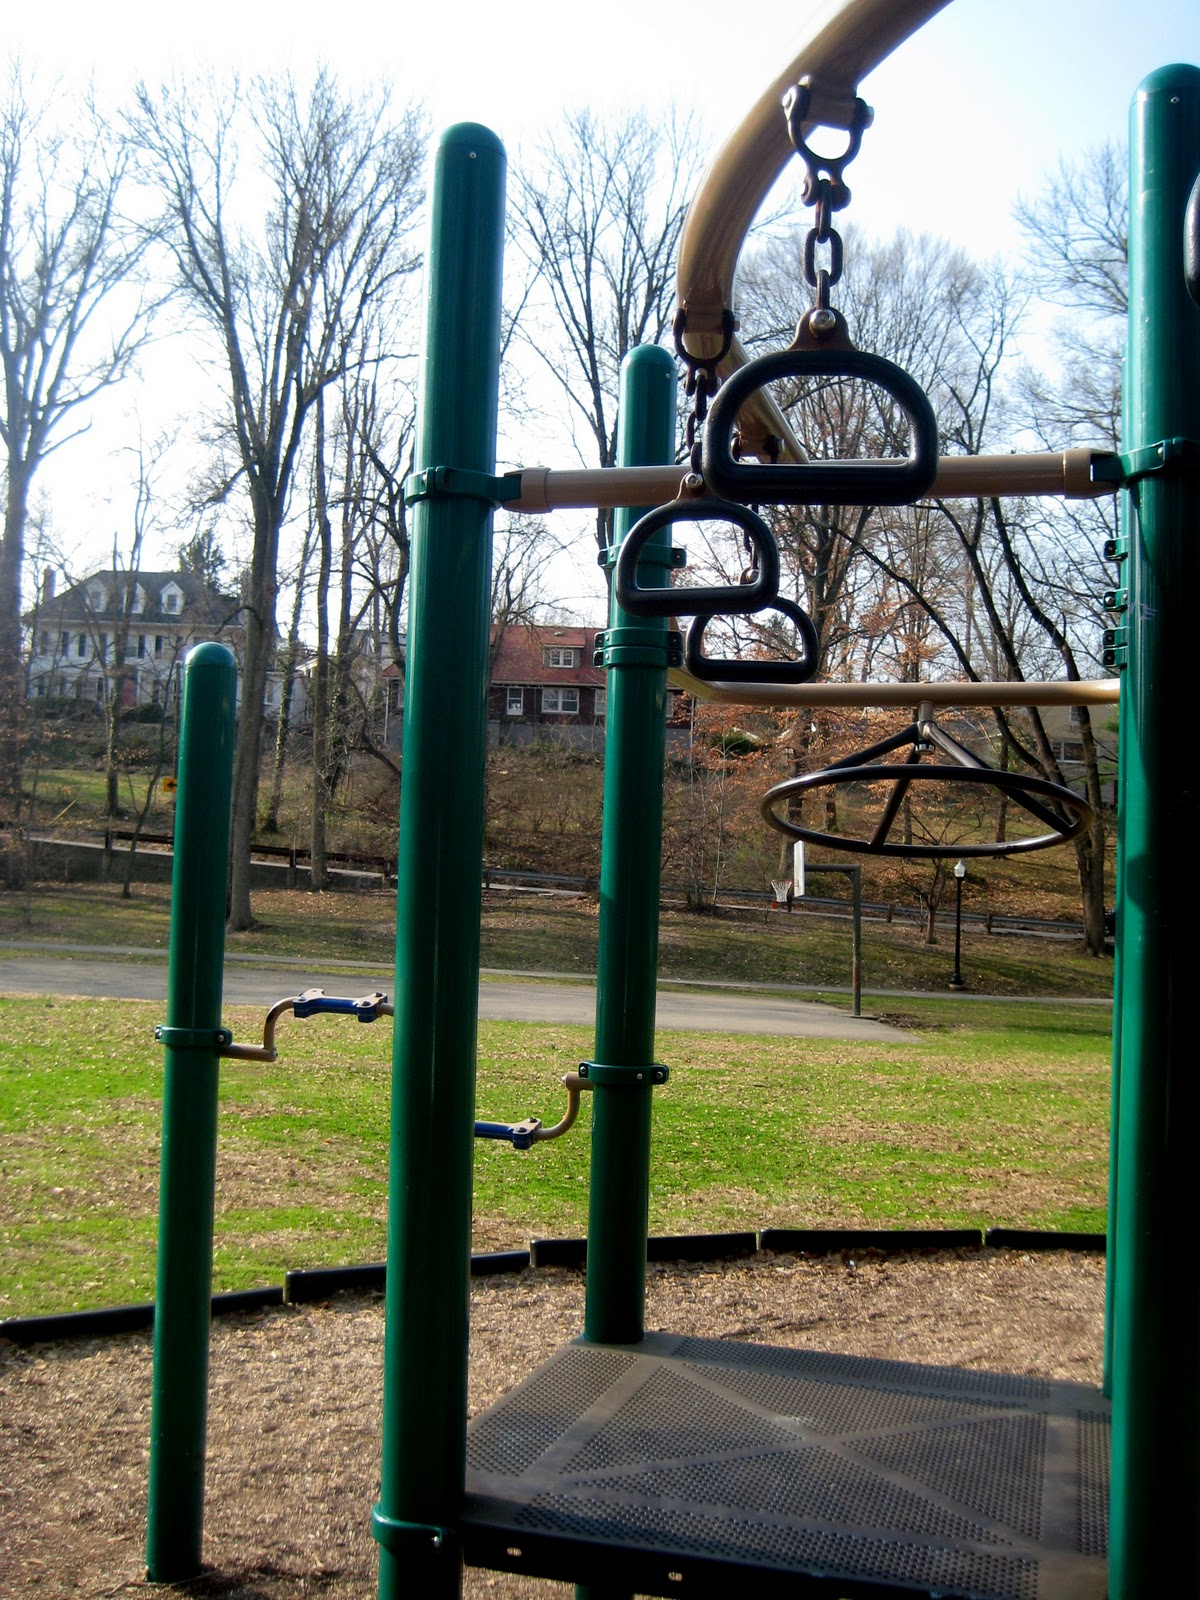 Review of Tyler Park By: Stephanie - Louisville Family Fun